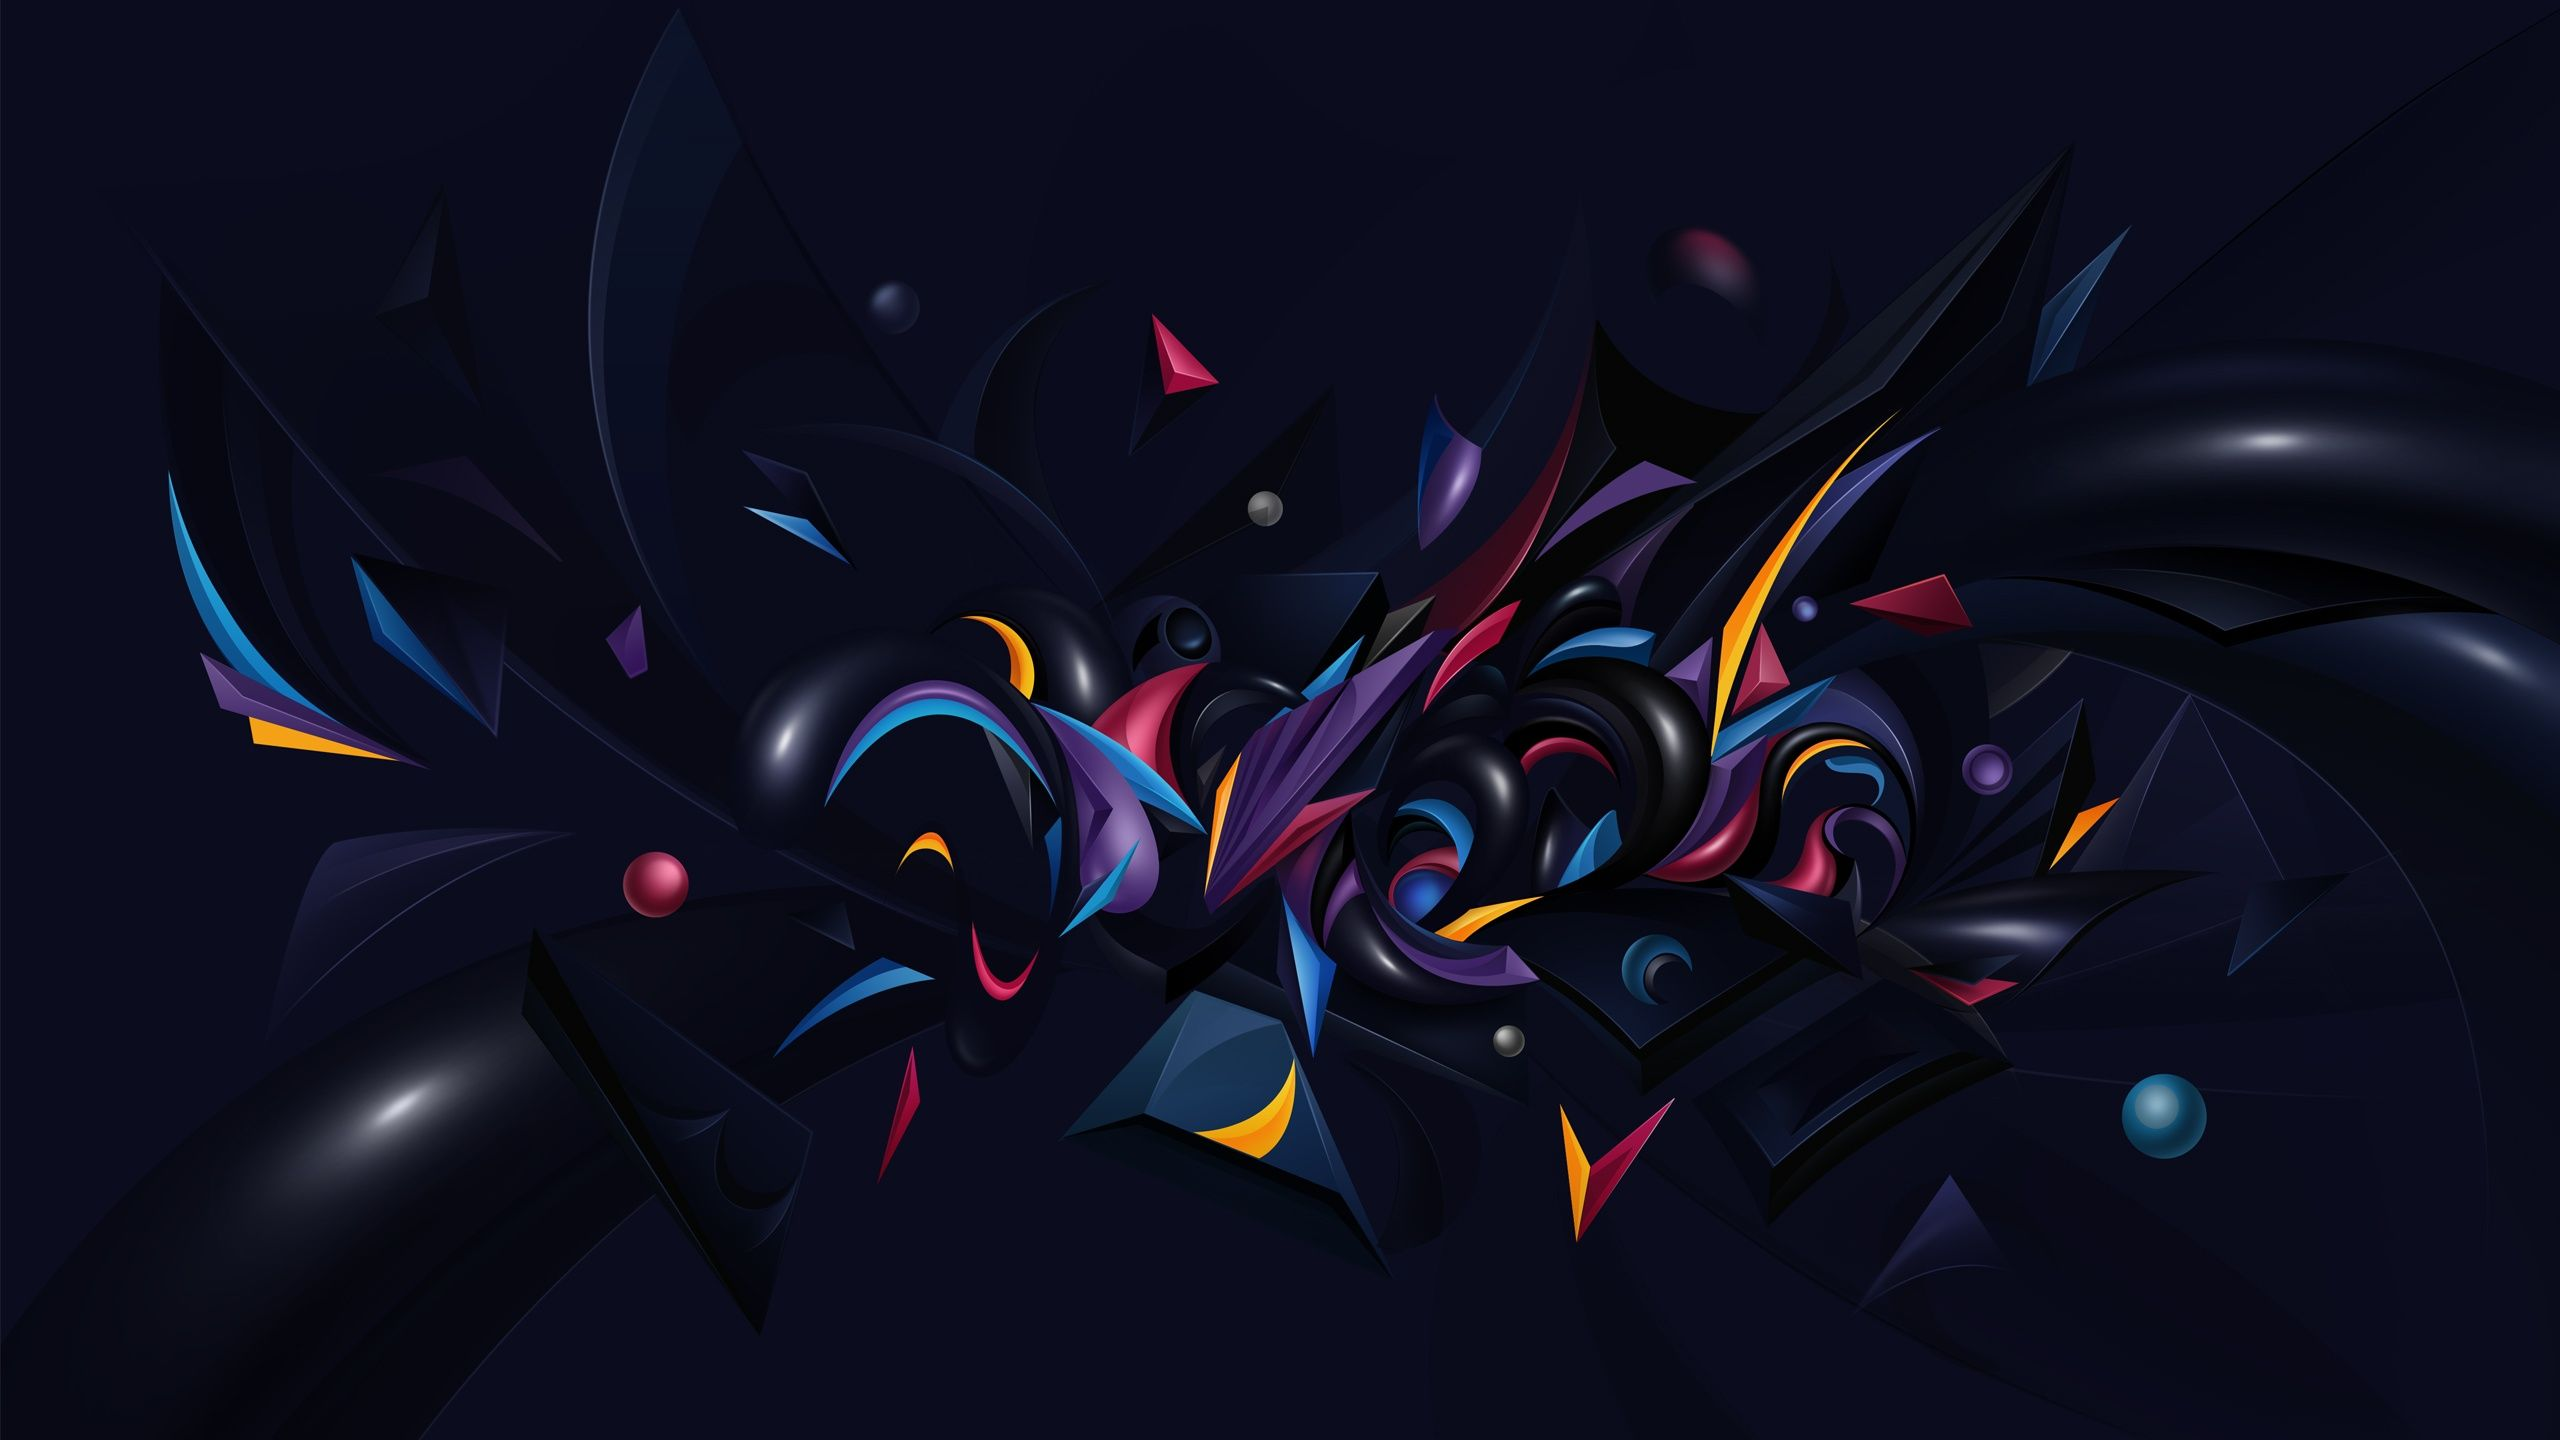 Abstract wallpaper art pinterest wallpaper and wallpaper ultra hd k abstract wallpapers desktop backgrounds hd pictures voltagebd Choice Image